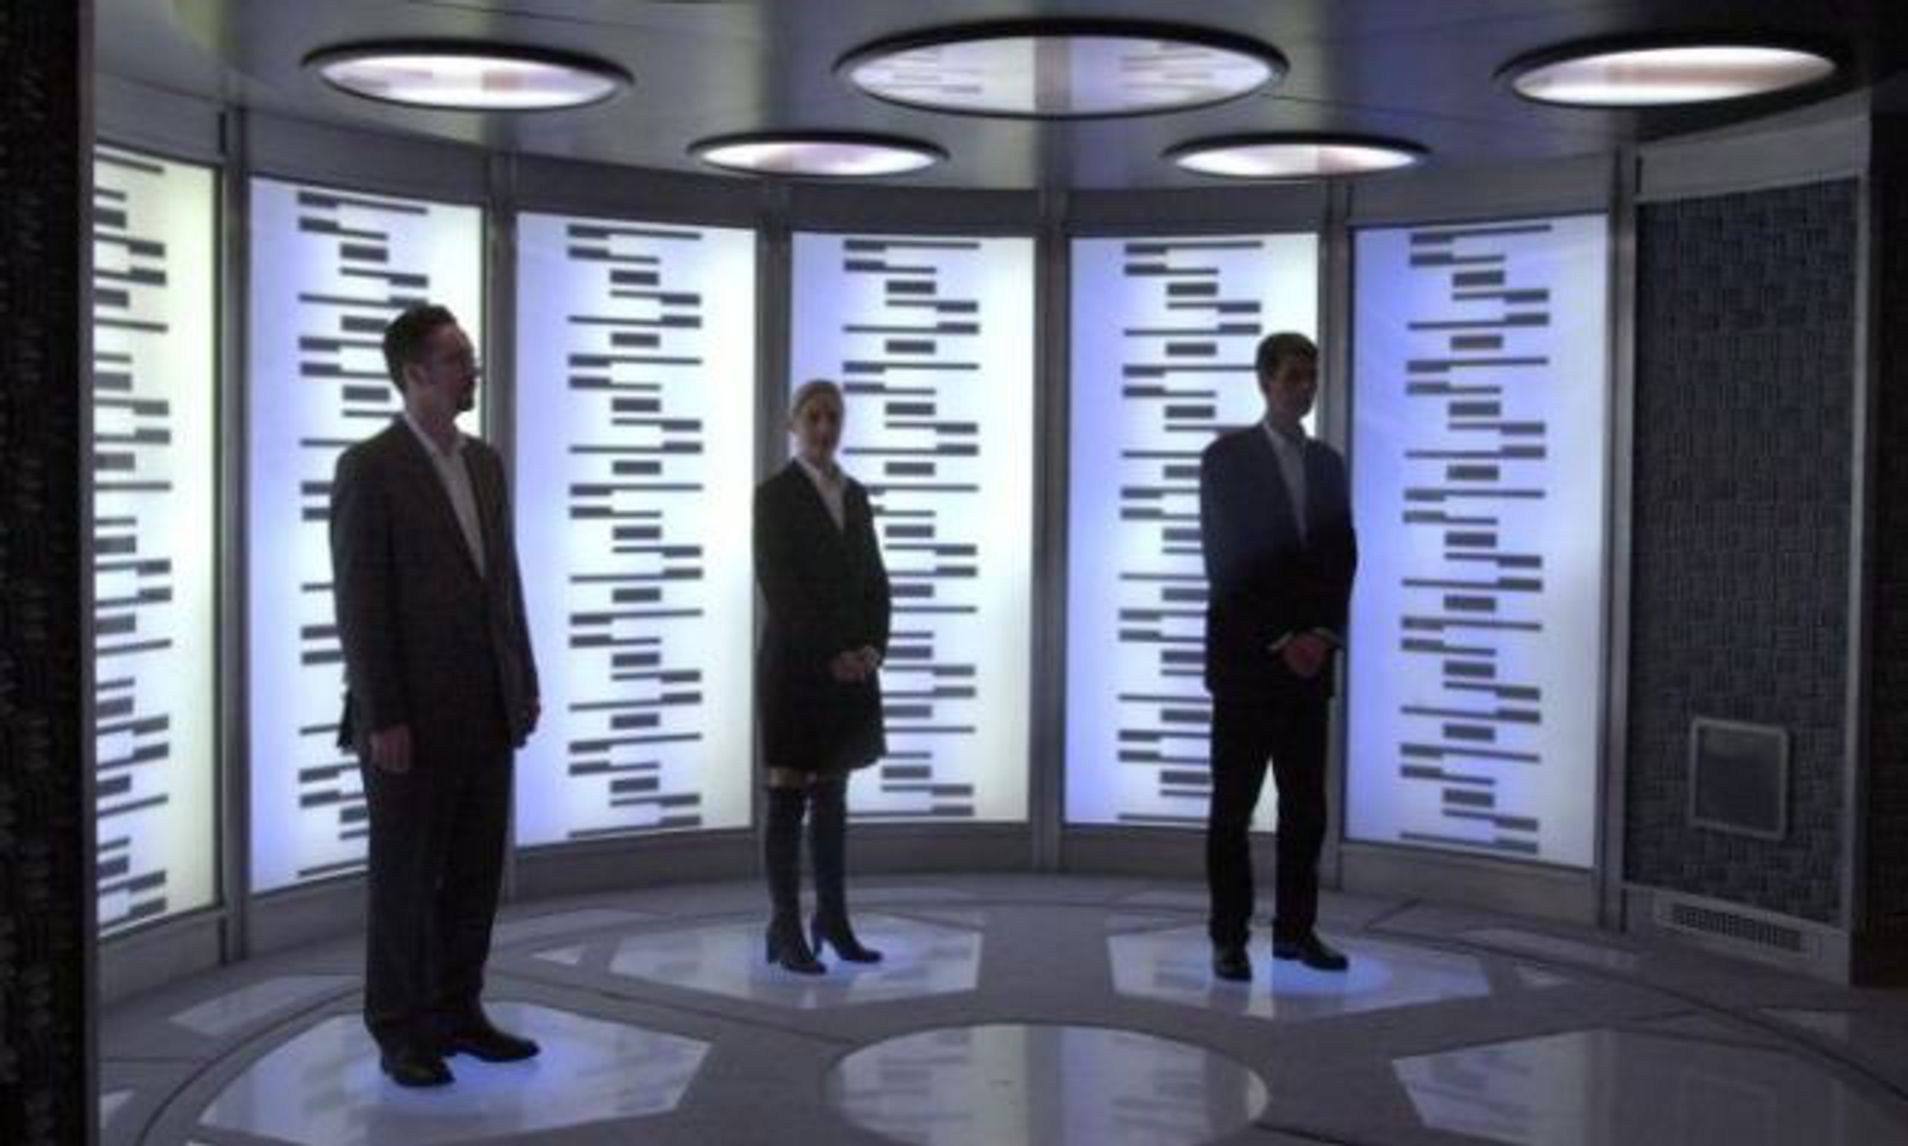 Is Teleportation actually Possible?